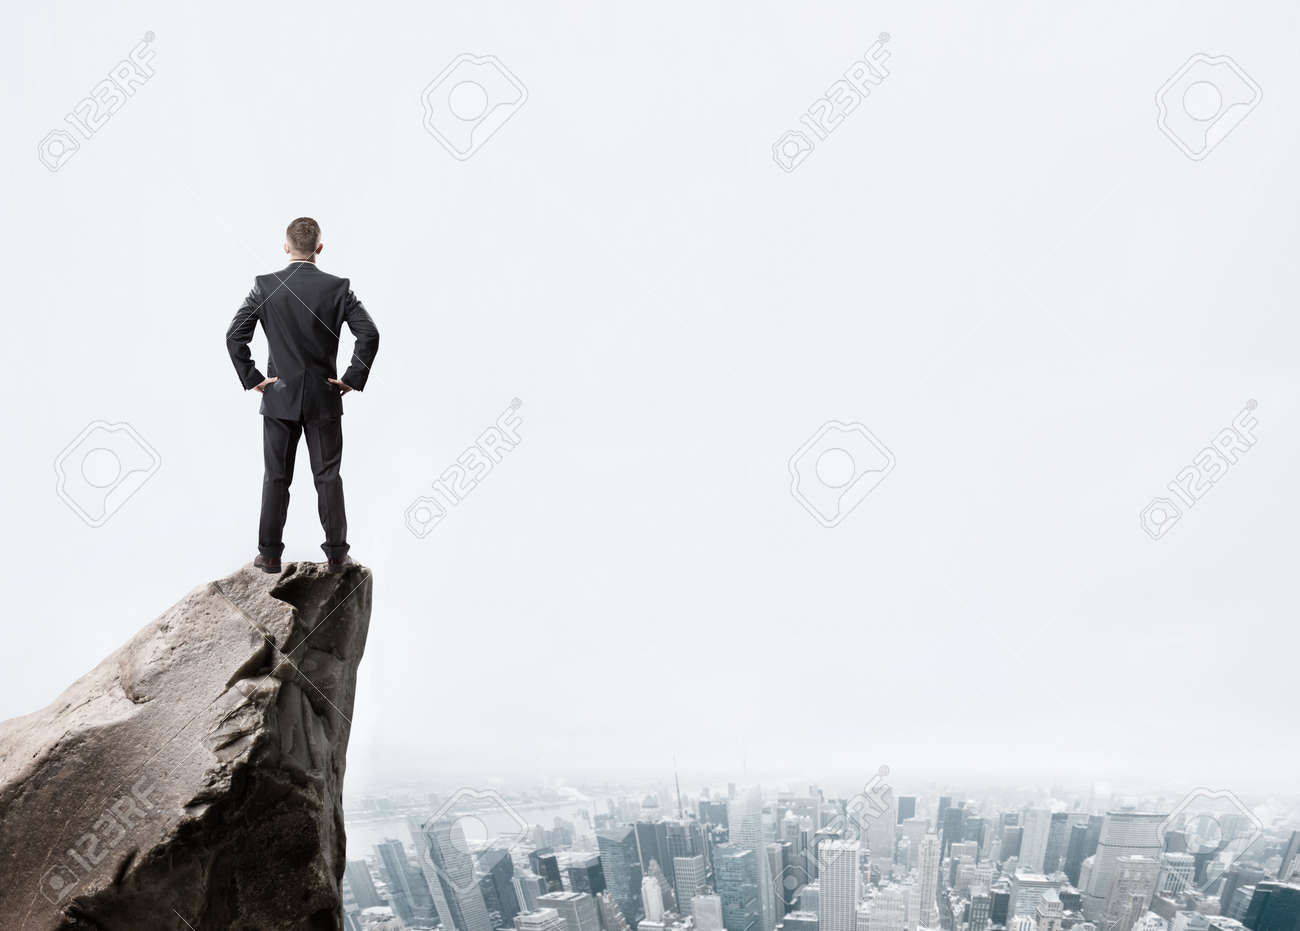 Young businessman standing on edge of rock mountain and looking at the city - 41330275